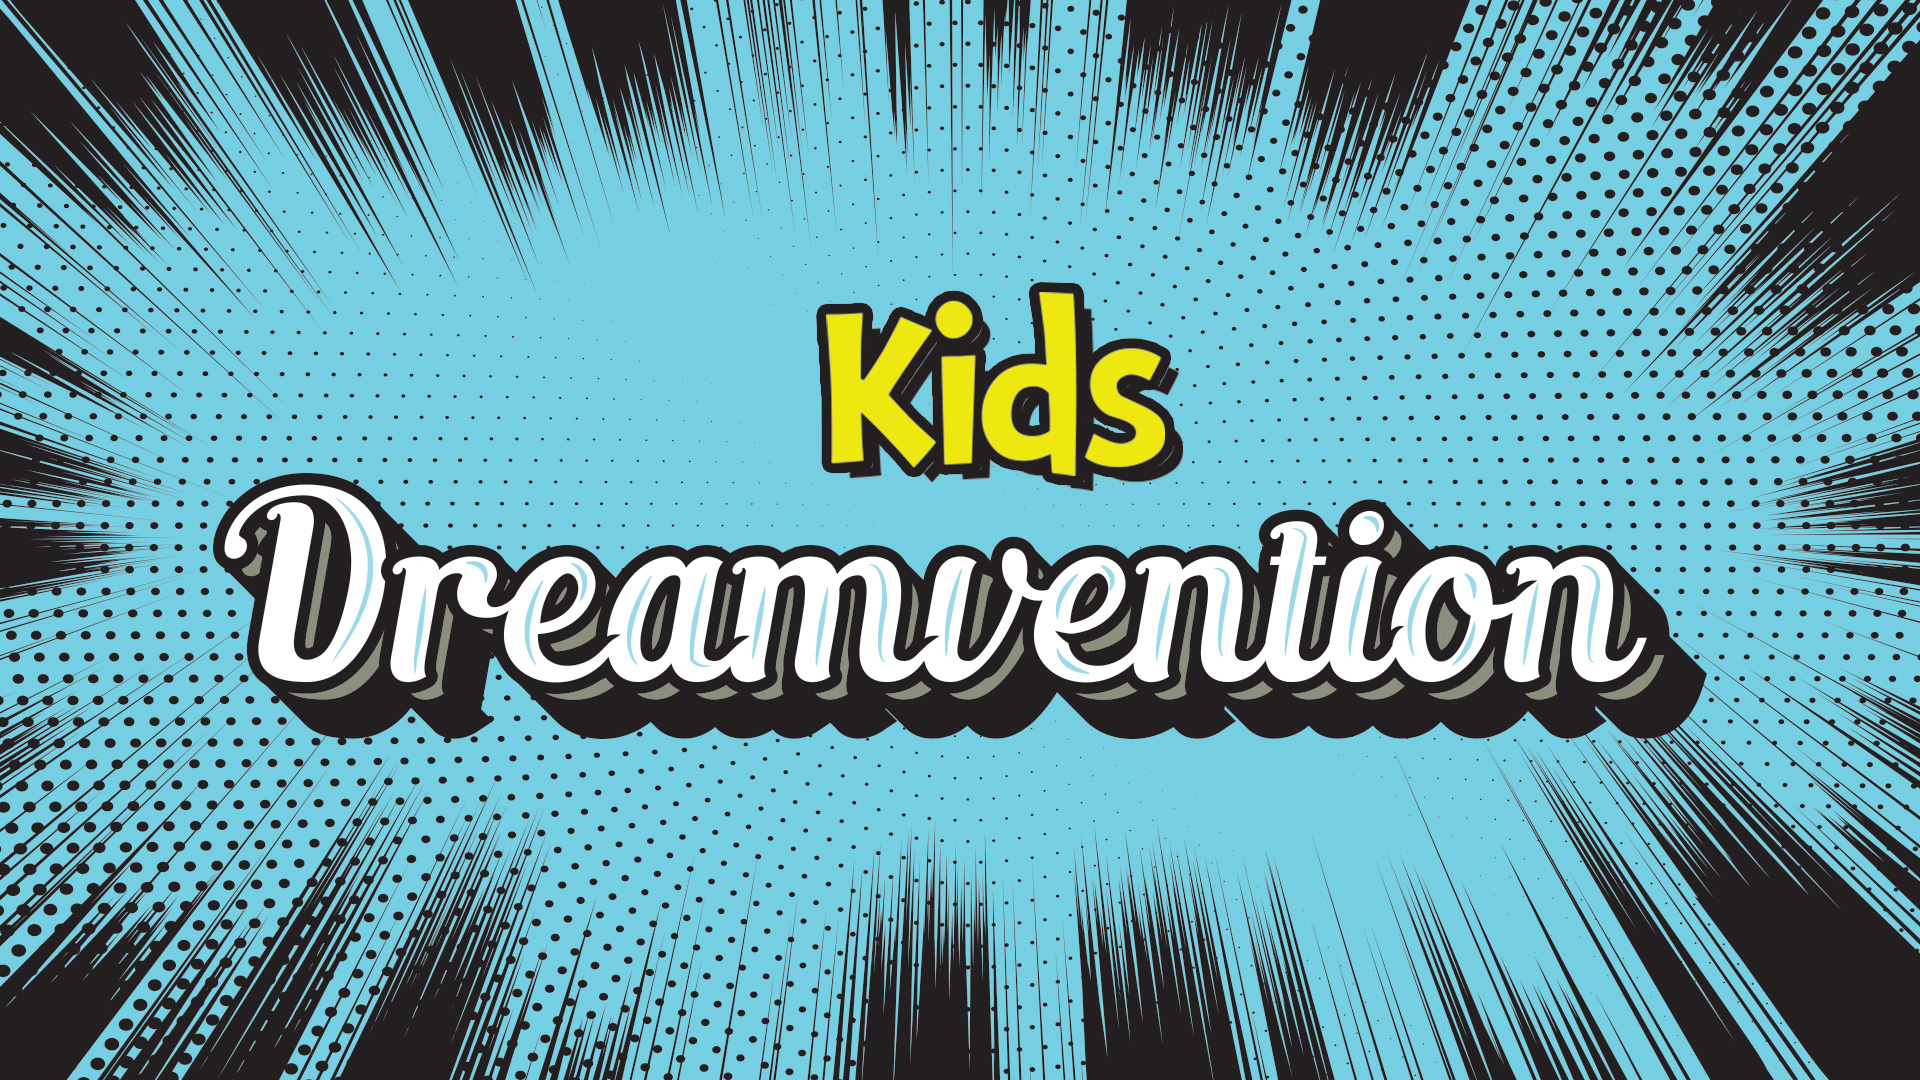 Dreamvention slide